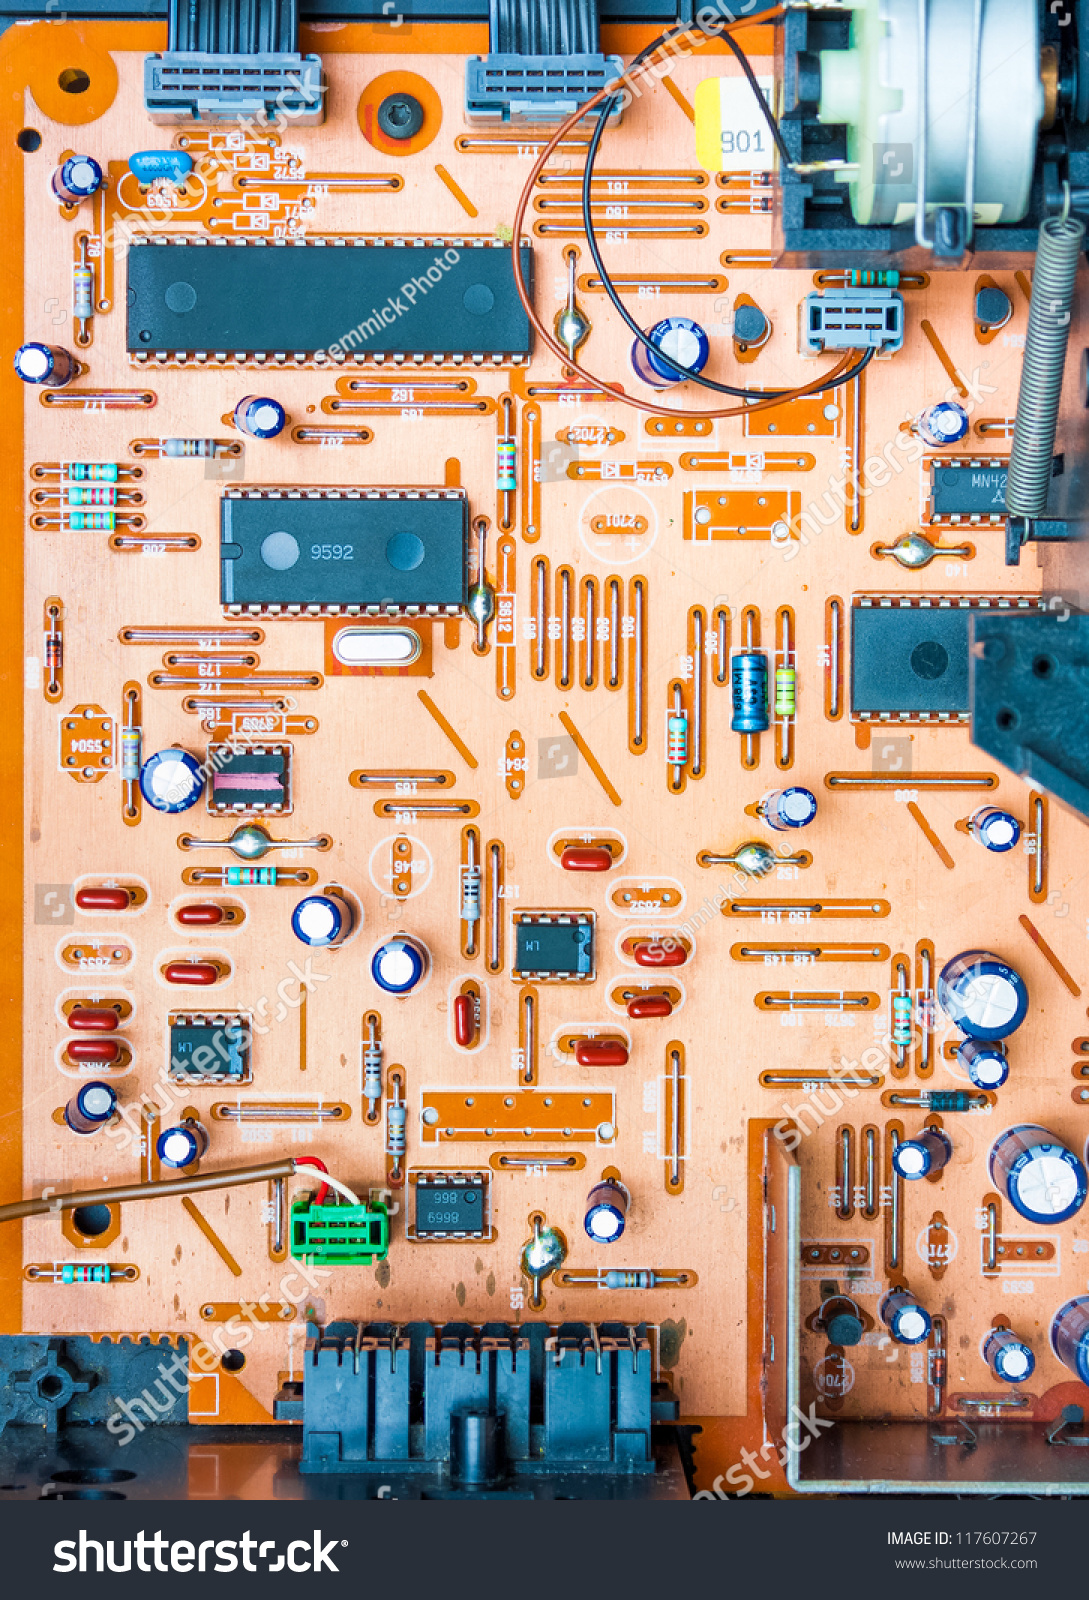 Vintage Orange Populated Printed Circuit Board Stock Photo Edit Now Stockfoto Pcb Used In Industrial Electronic Showing The Conductive Traces Vias Through Hole